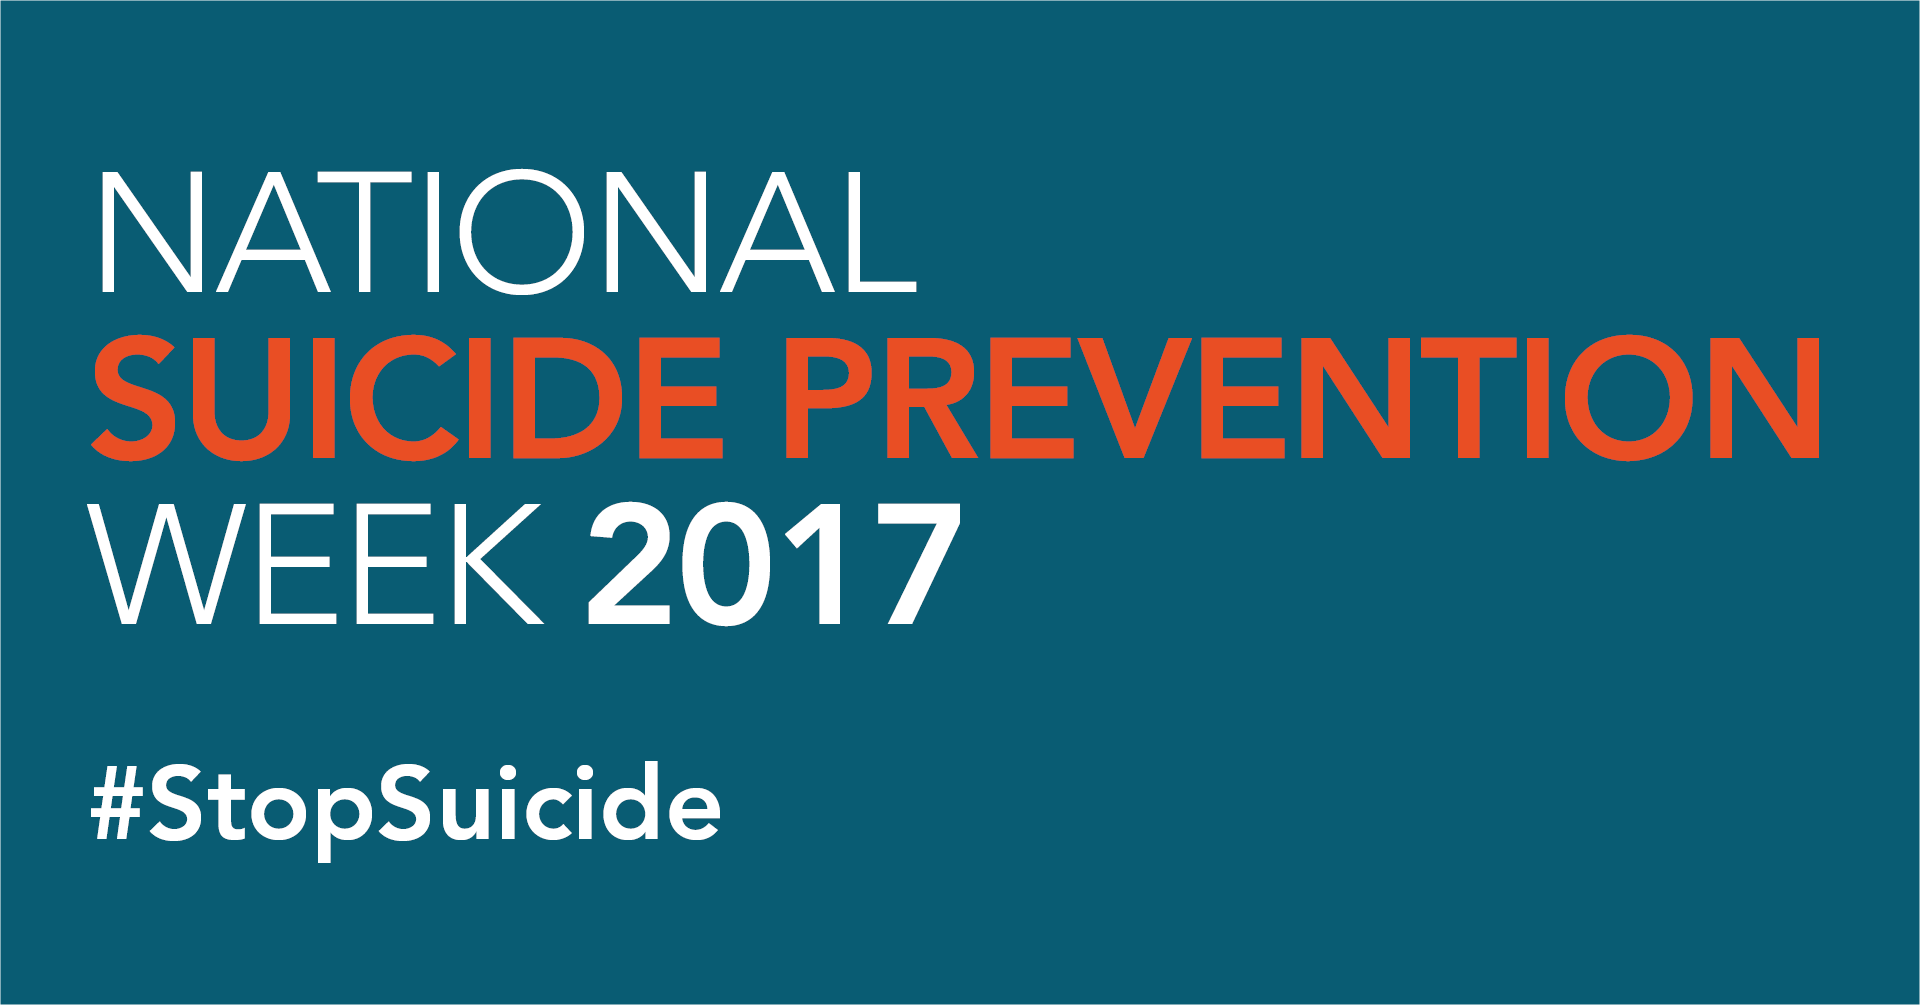 Suicide Prevention Week: Don't Look For Excuses and Start Talking About the Real Problems